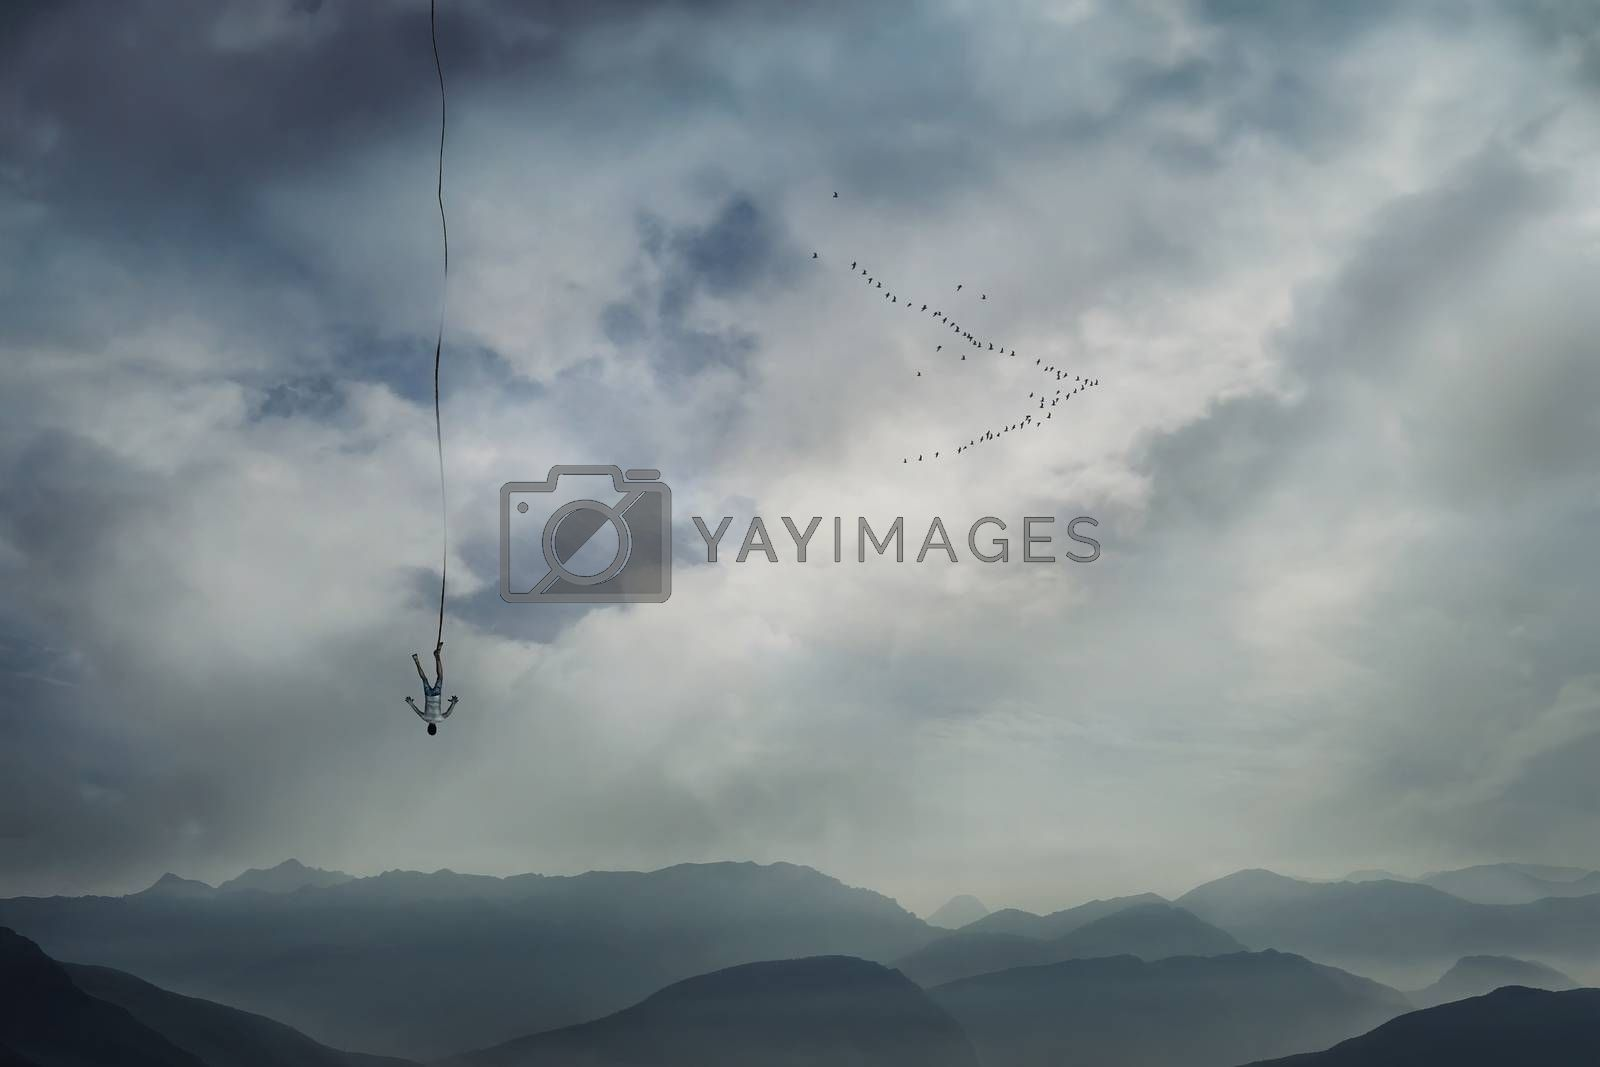 Young man falling from the sky with a rope tied to his leg as safety insurance. Base jump, mysterious crash, life risk and hard determination concept.